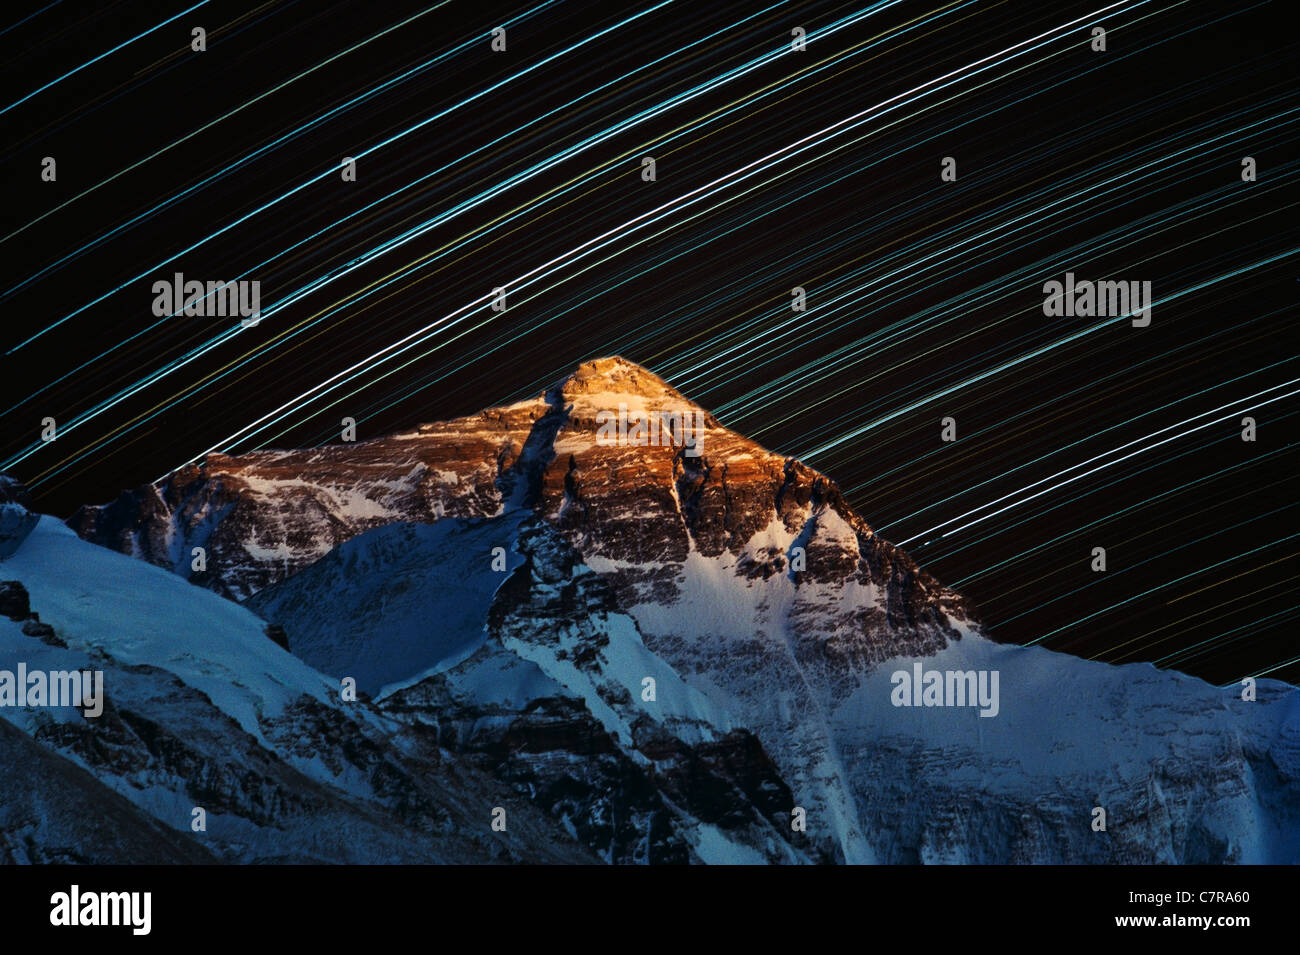 Star trail over Mt. Everest, Tibet, China - Stock Image